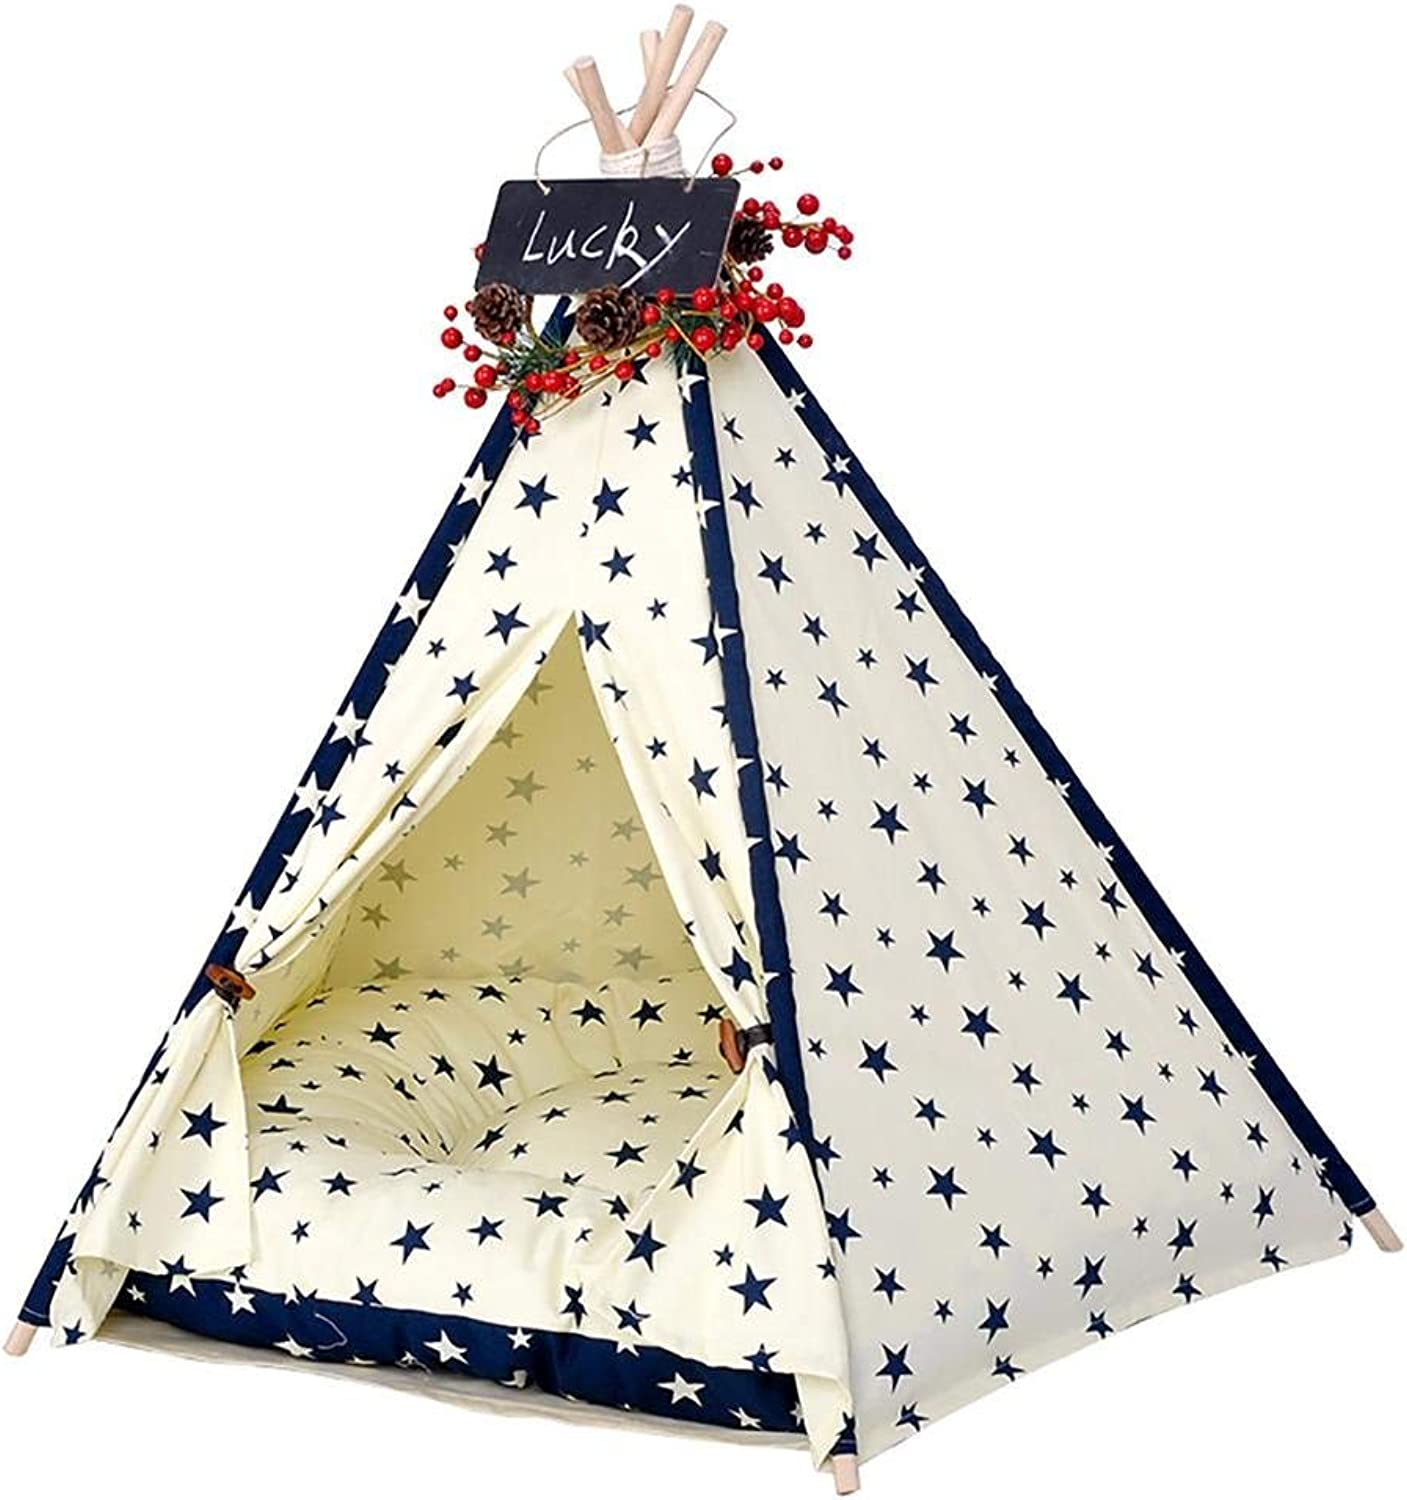 HEI SHOP Pet Teepee Dog(Puppy) & Cat Bed  Portable Pet Tents & Houses for Dog(Puppy) & Cat with cushion